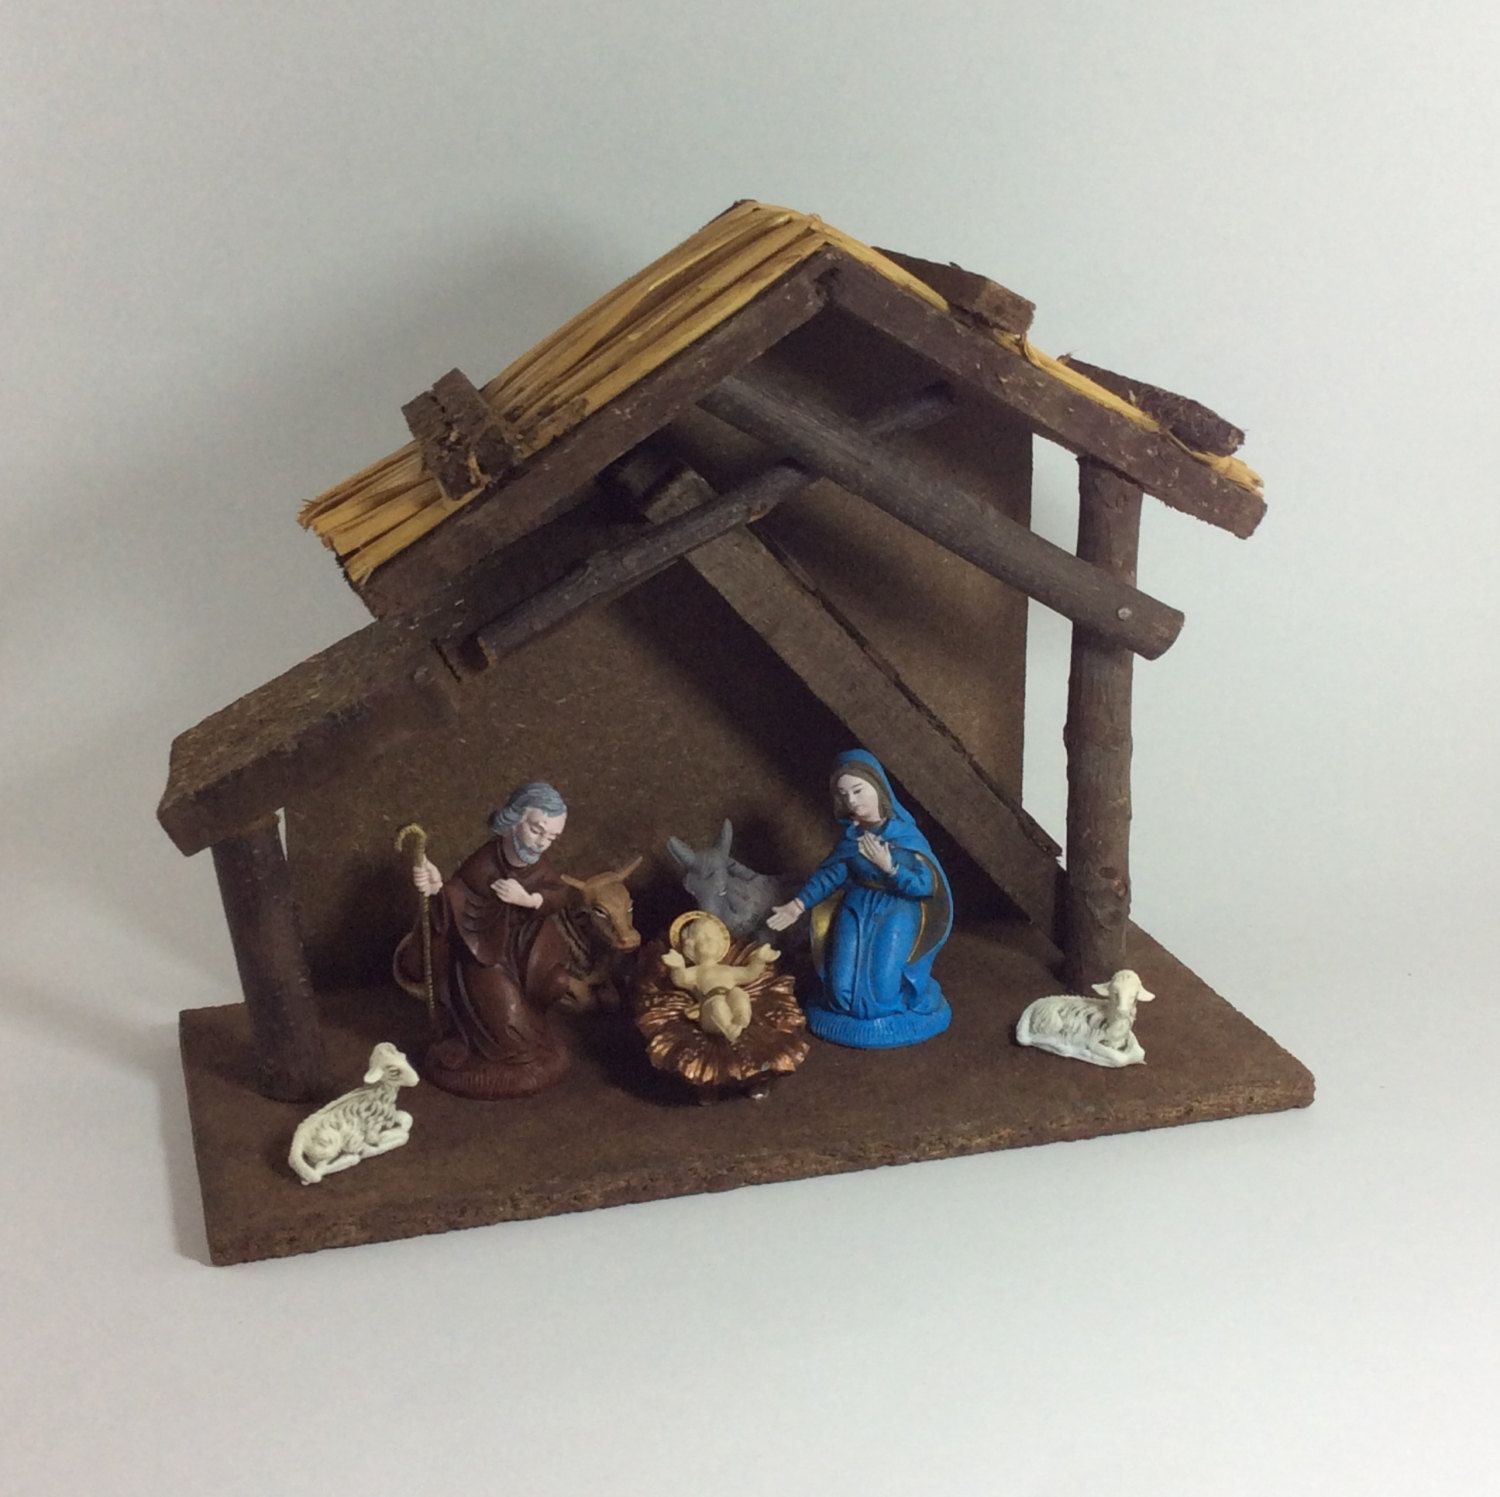 Vintage Wood Nativity Stable Creche Manger Set Christmas Religious Decor